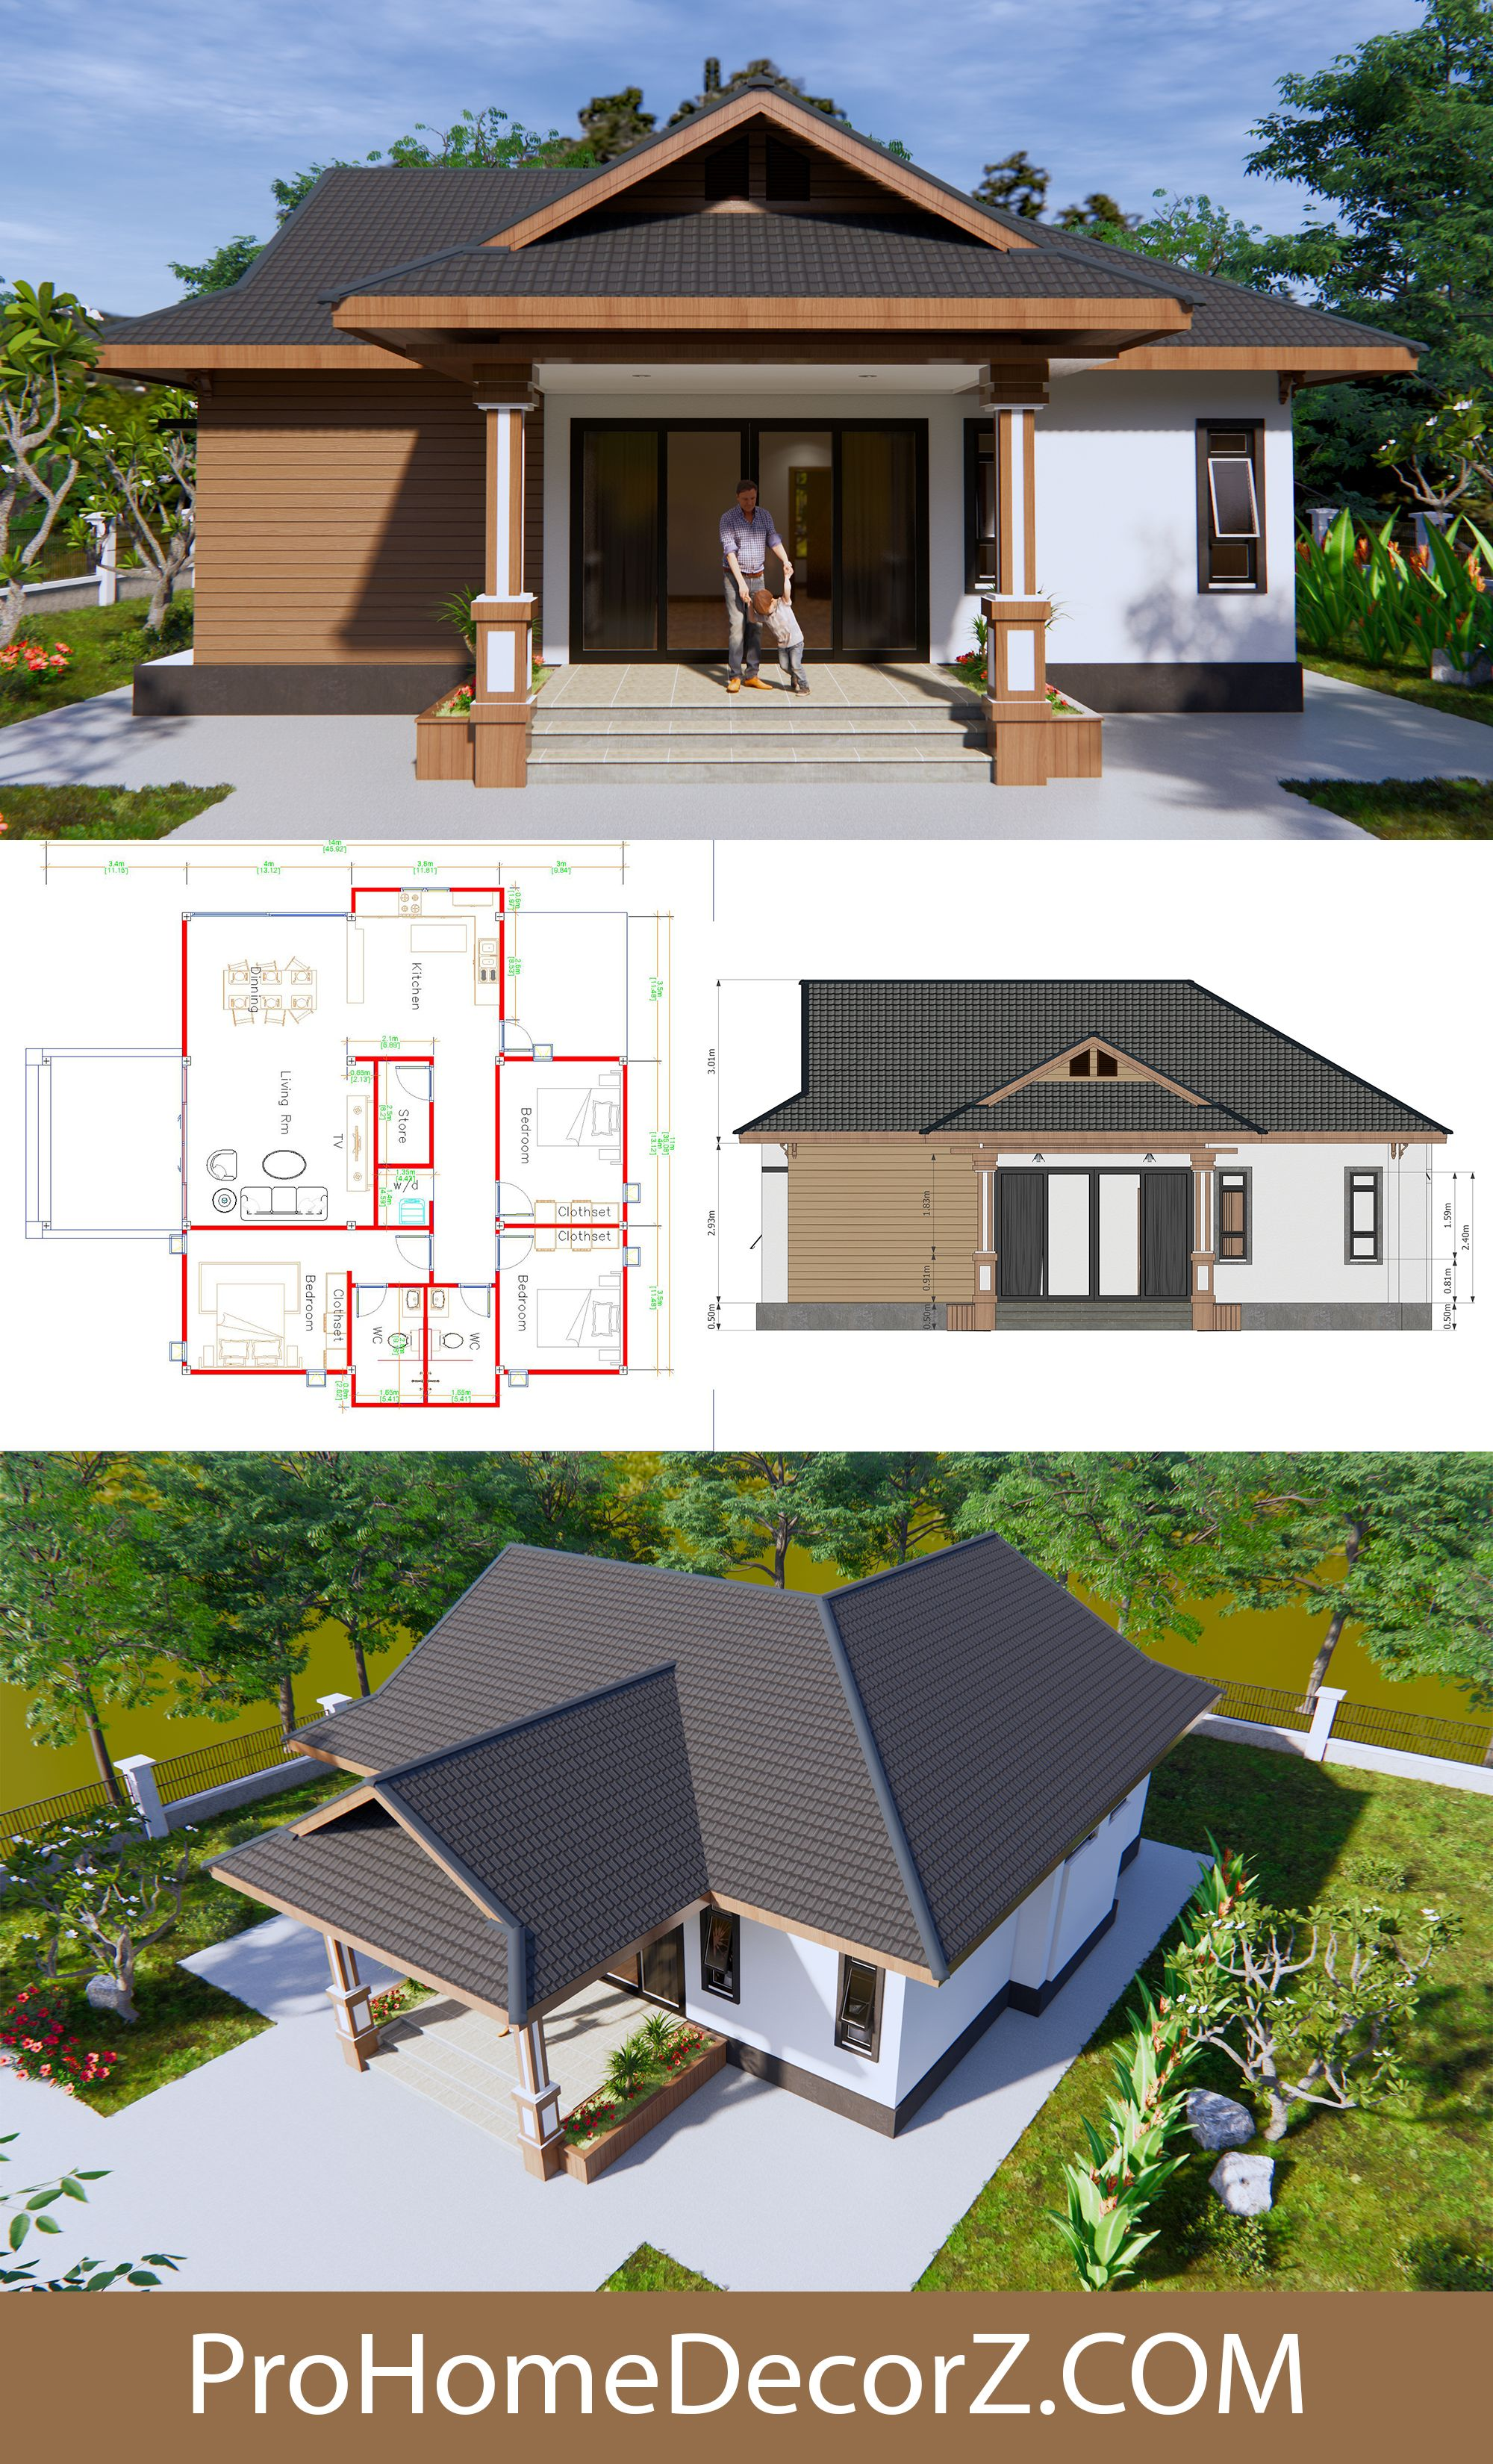 Cool Home Plans 11x14 Meters 36x46 Feet 3 Beds House Plans Bungalow Floor Plans Small House Design